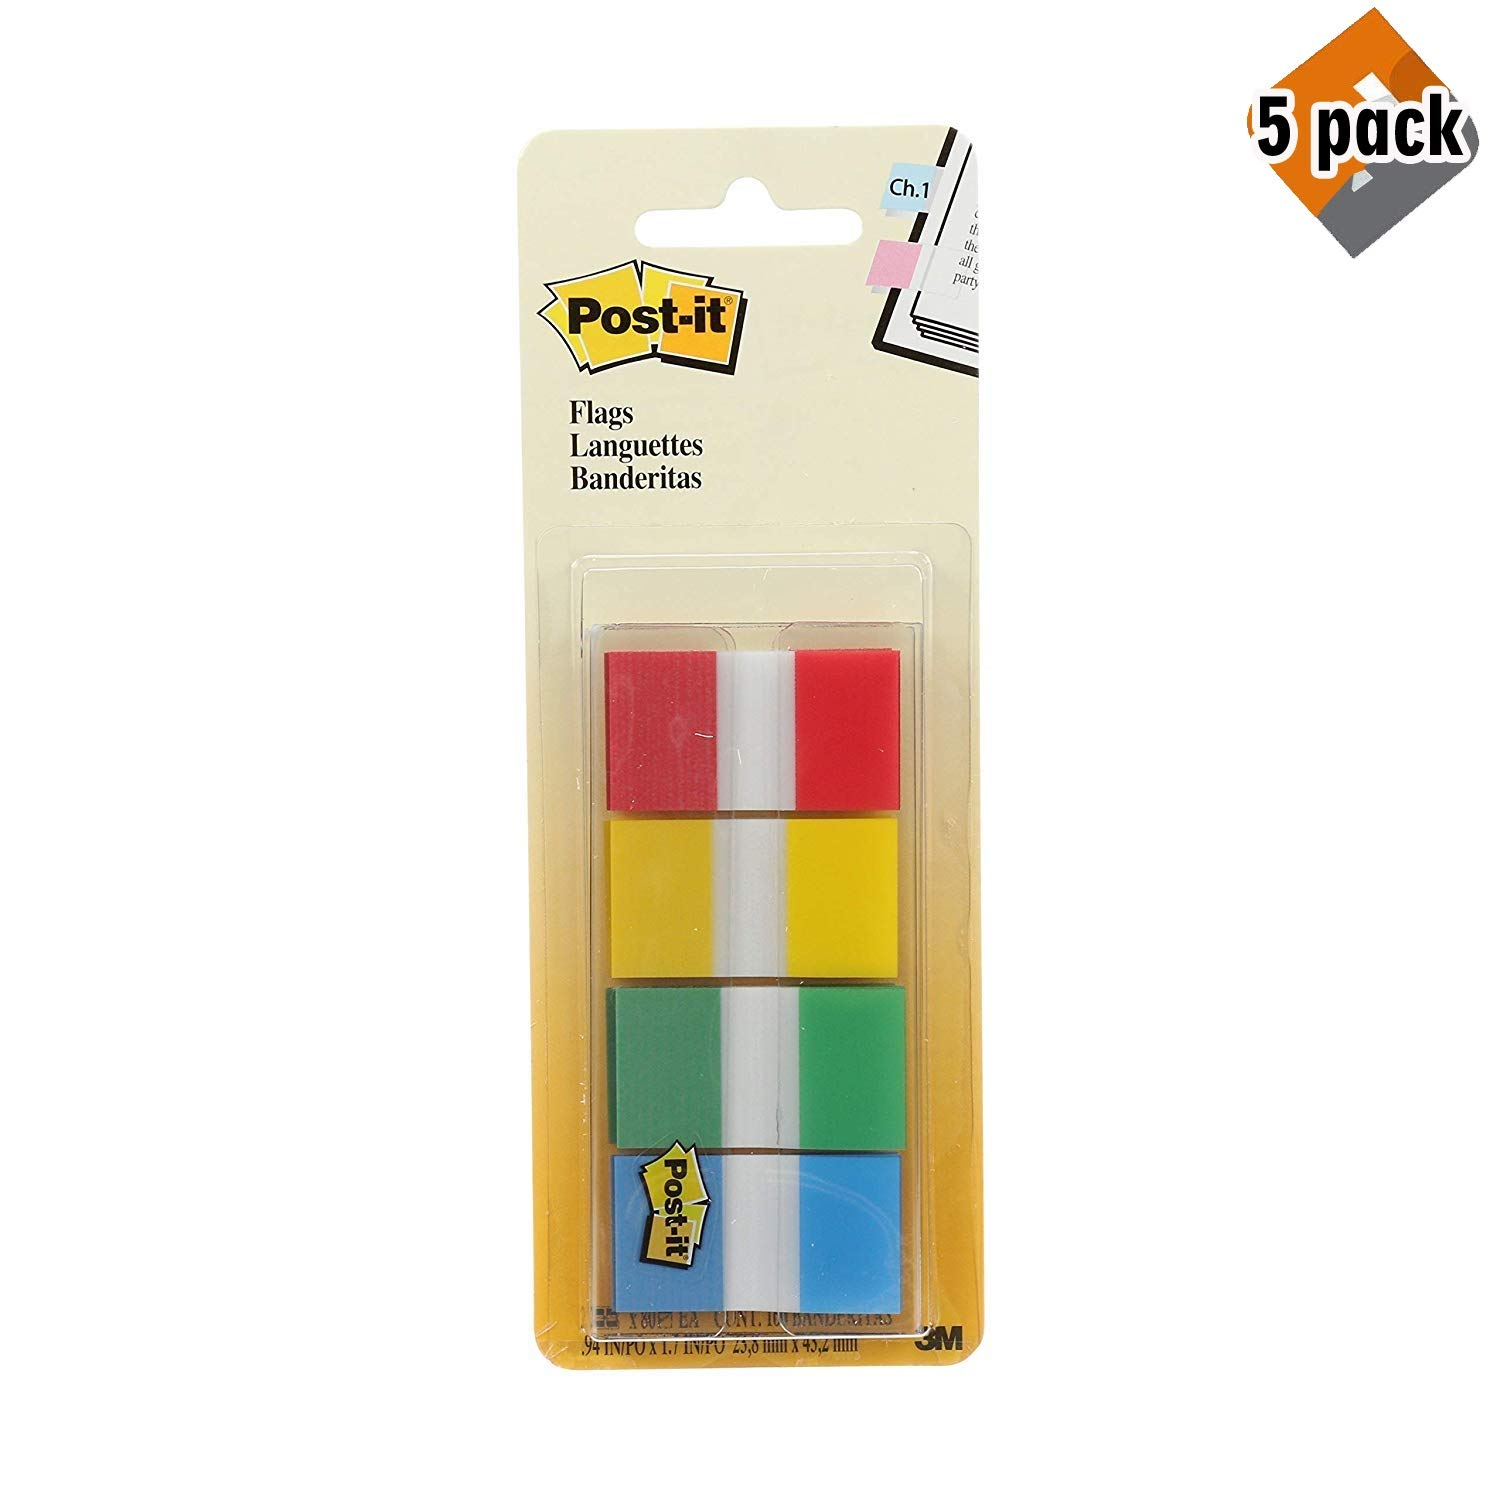 Post-it Flags, Assorted Primary Colors.94 in. Wide, 80/On-The-Go Dispenser, 2 Dispensers/Pack, (680-RYGB2) - 5 Pack by Post-it